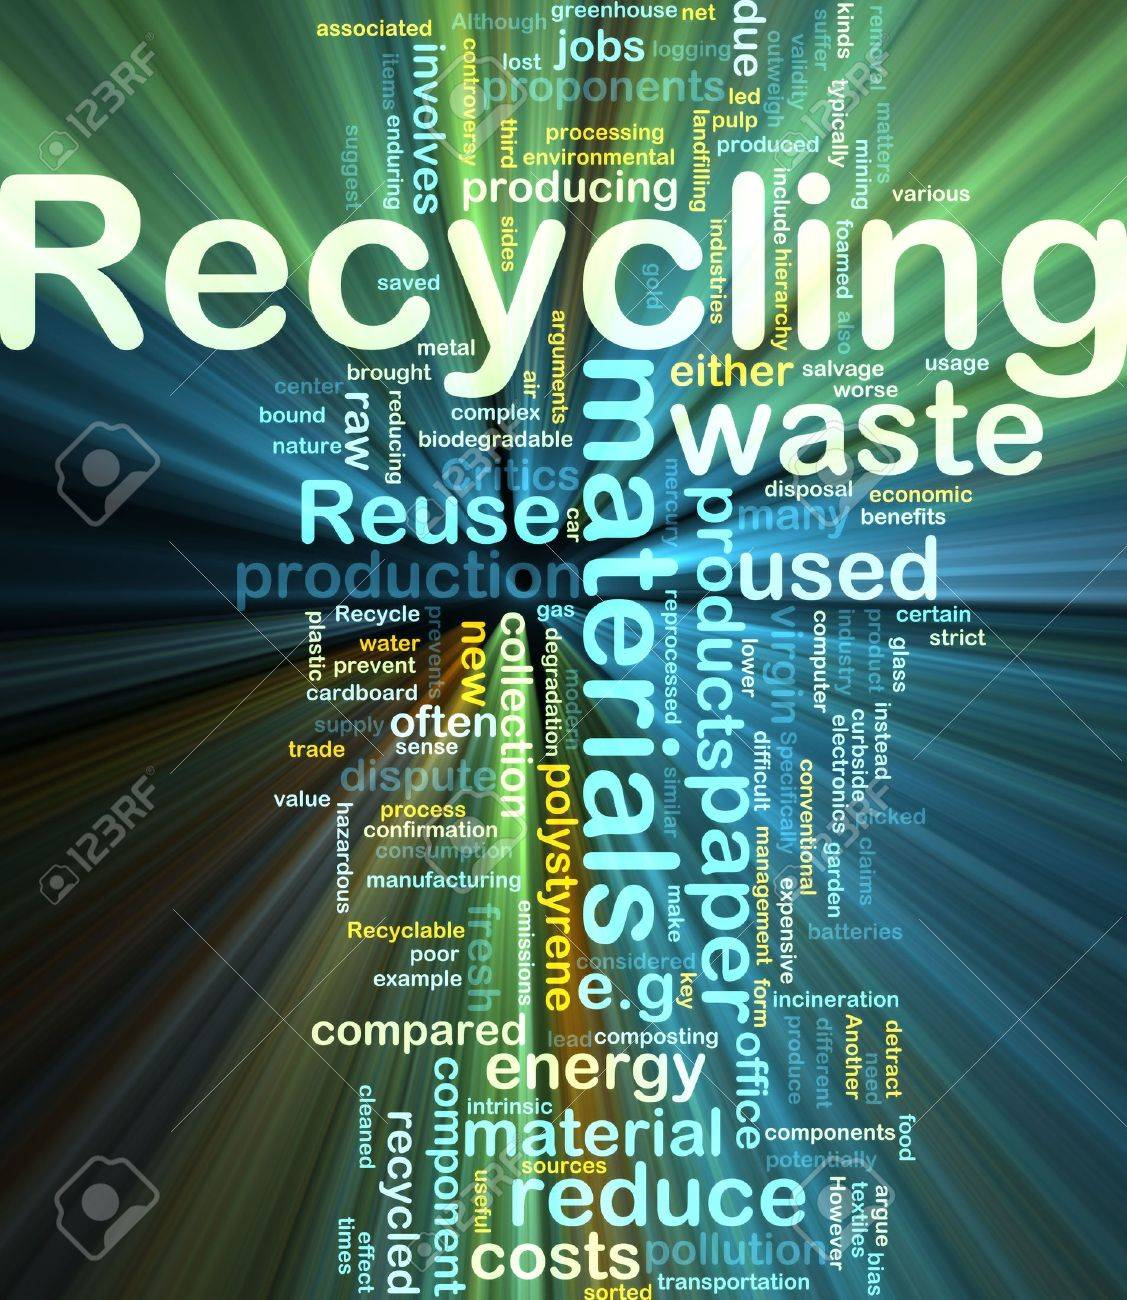 E waste background images - Electronic Waste Background Concept Illustration Of Recycling Waste Materials Glowing Light Effect